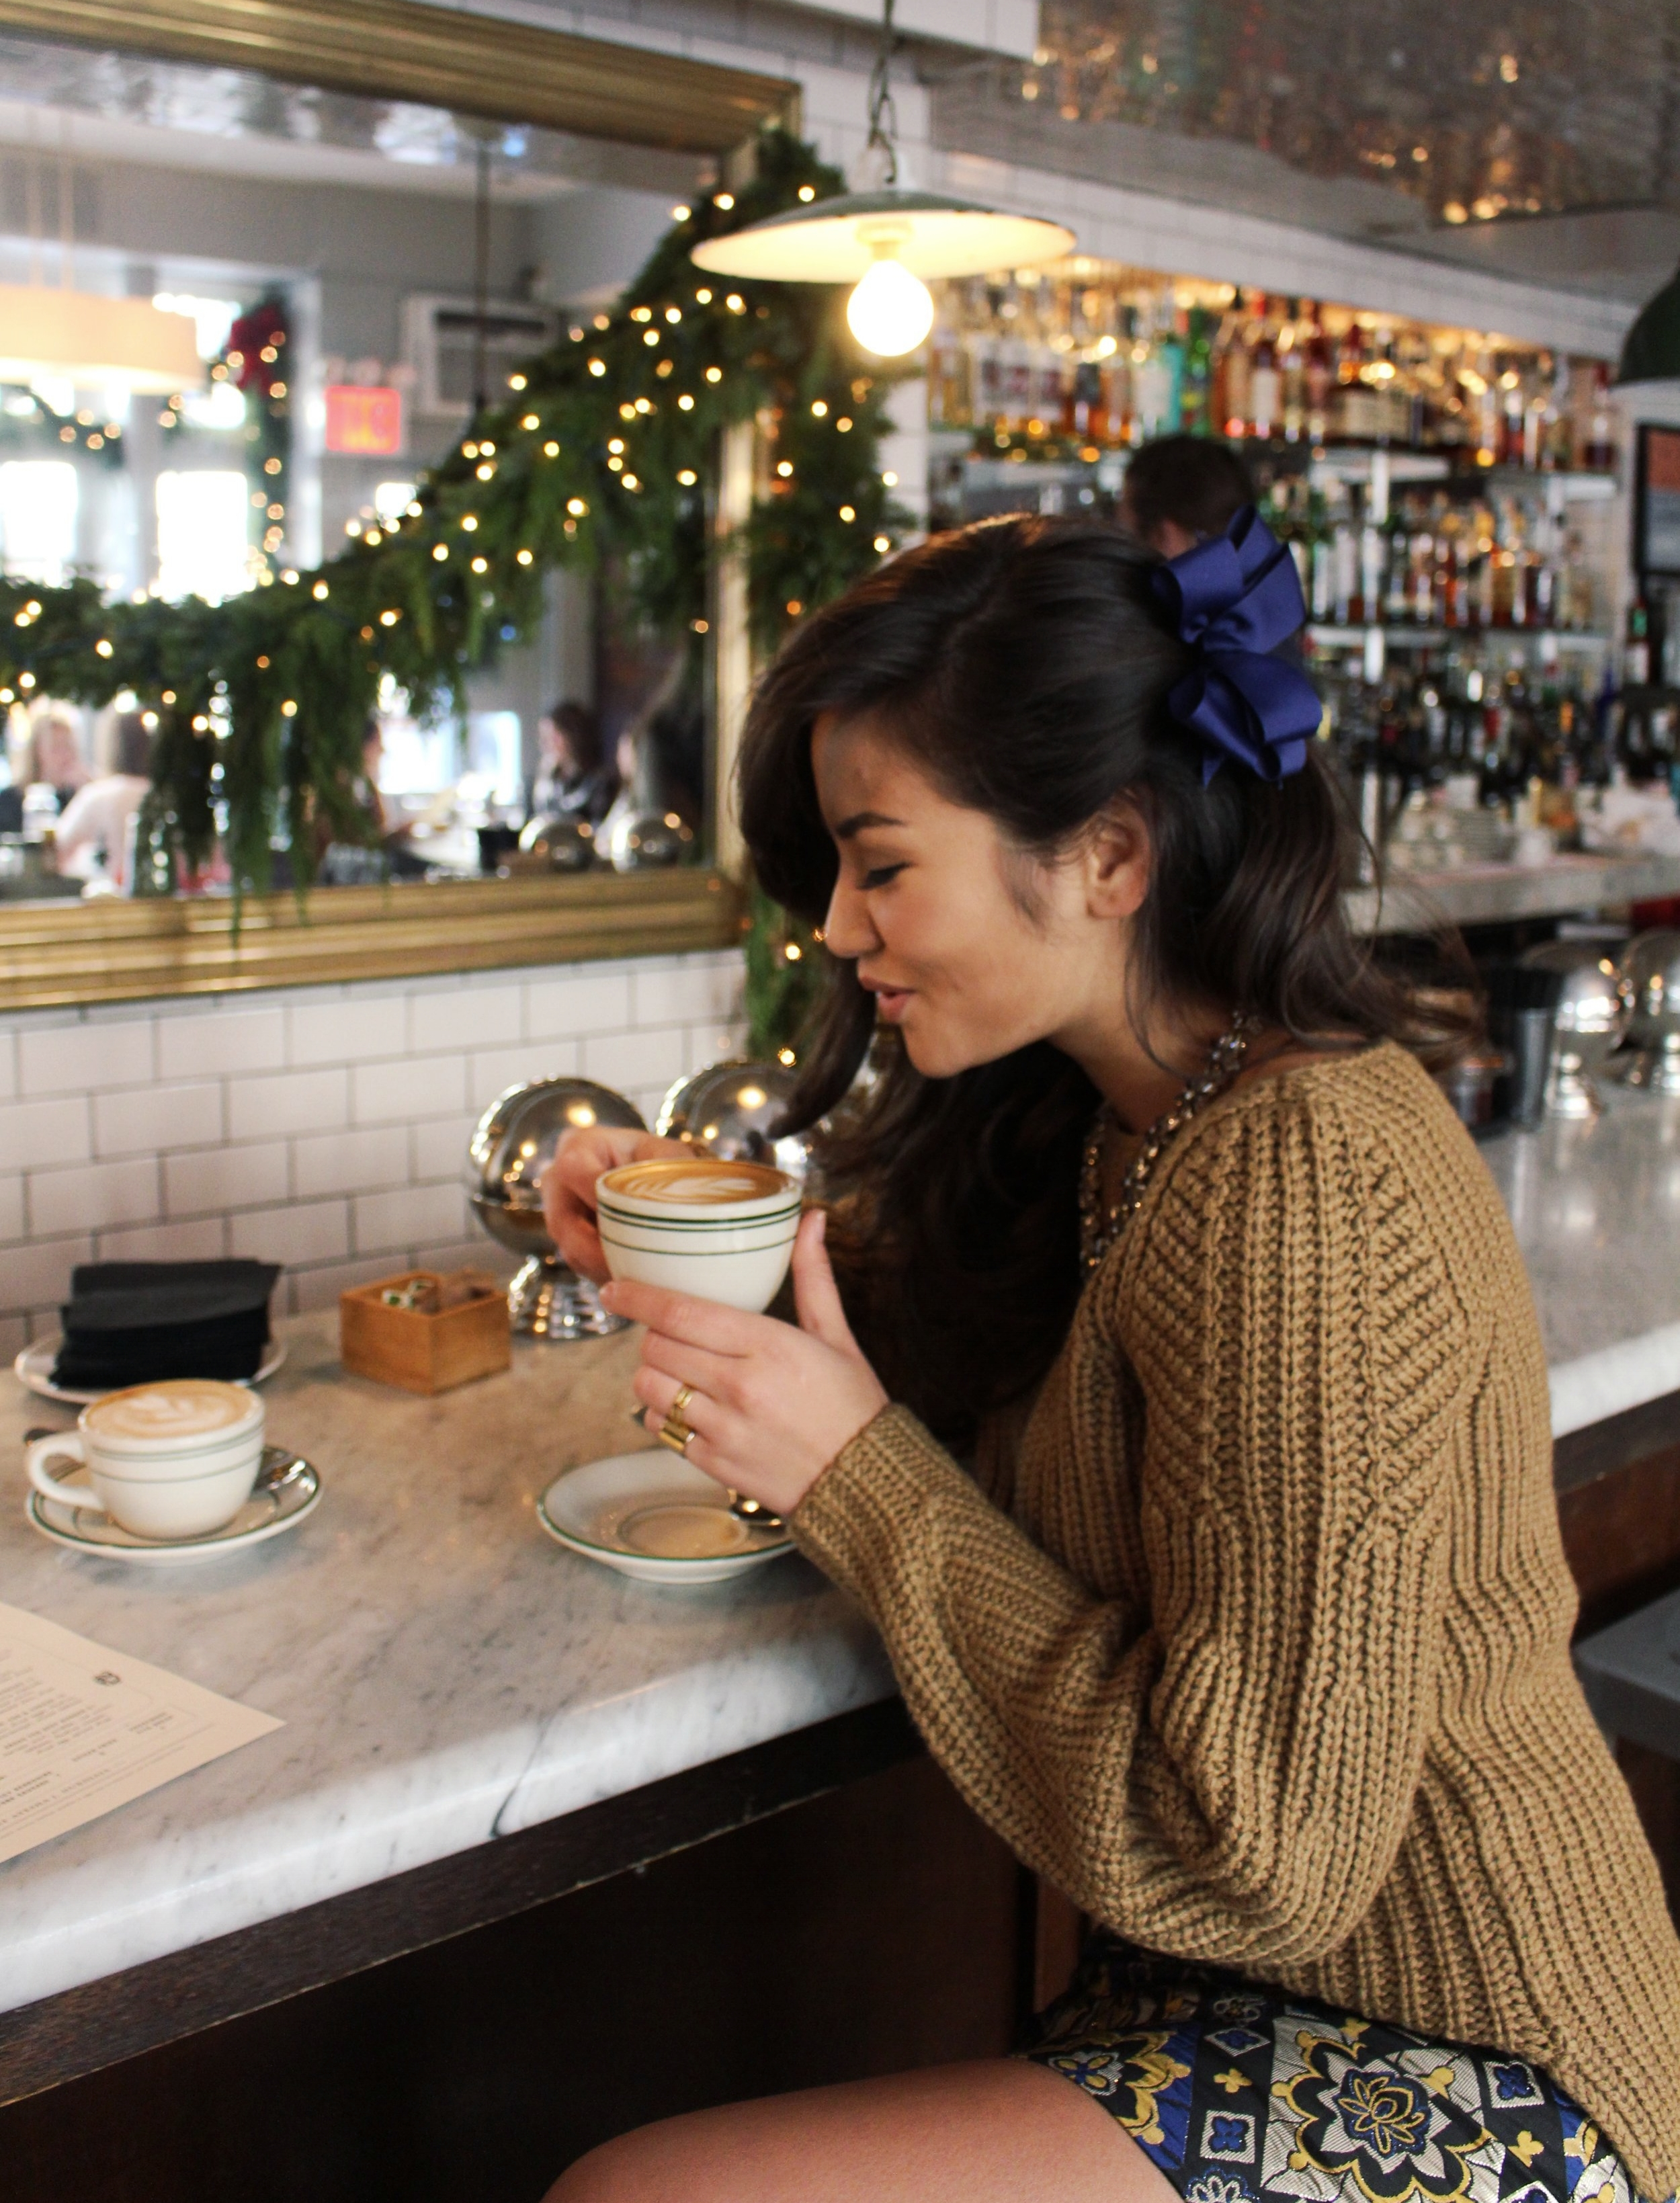 LOFT Mustard Christmas Sweater Caila Quinn drinking coffee